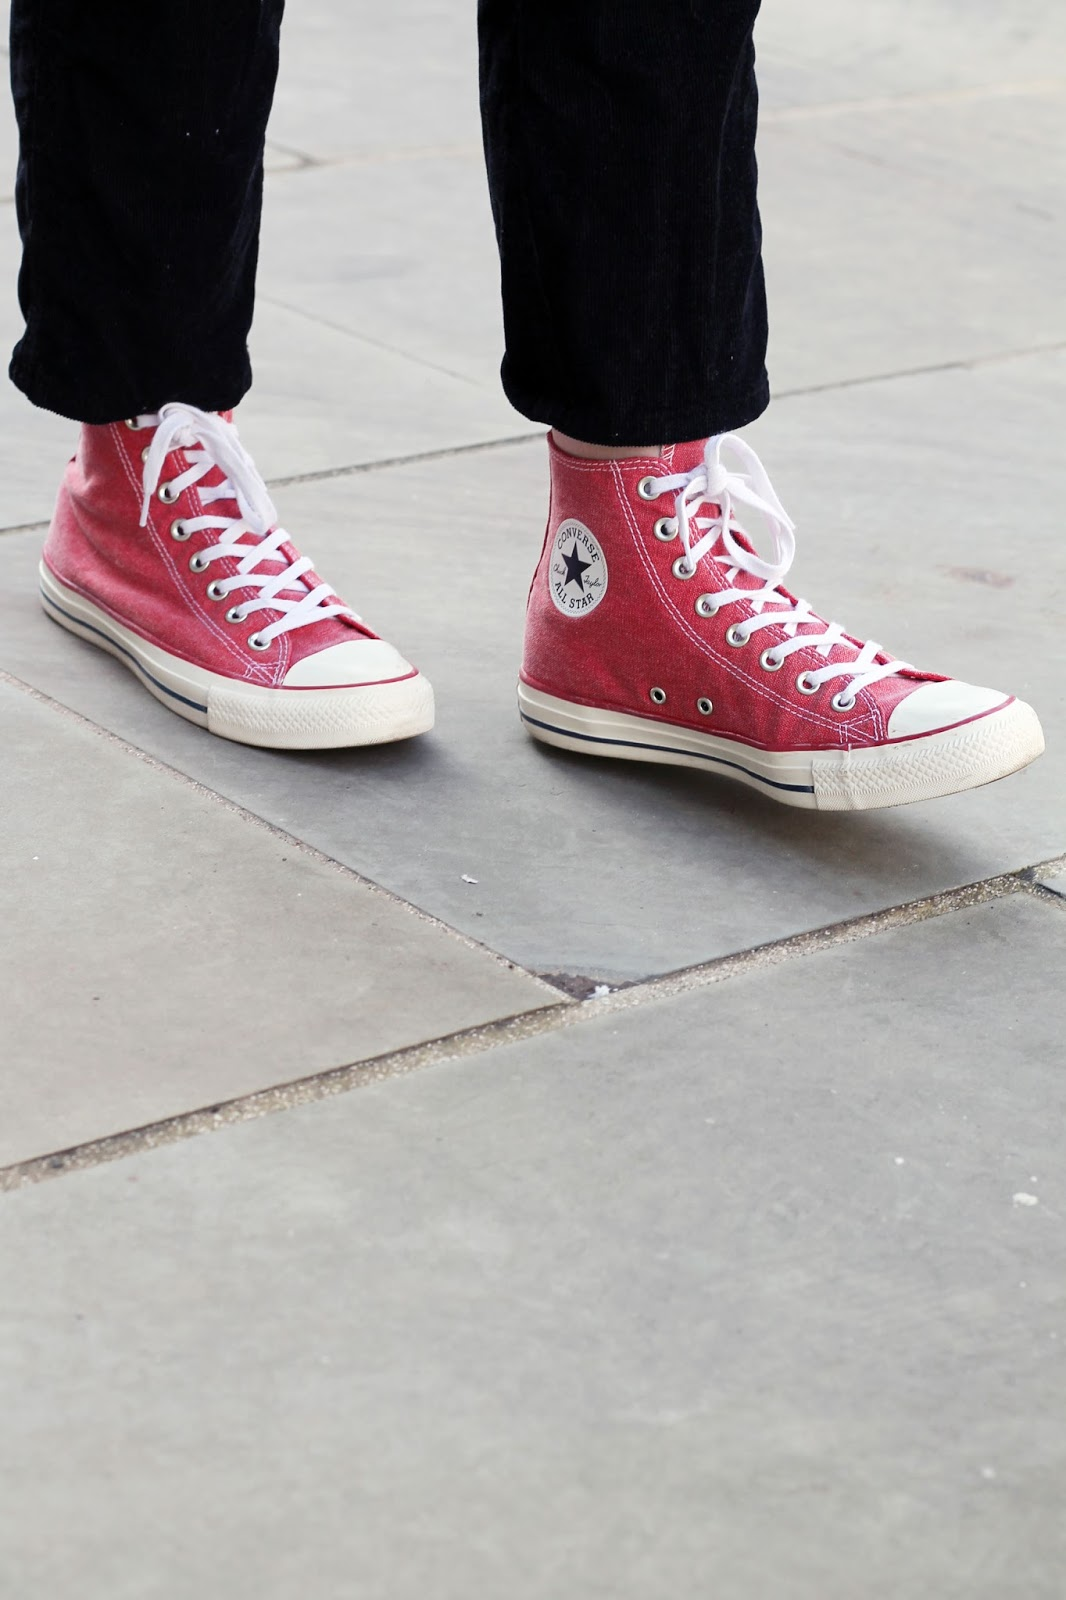 black corduroy dungarees with washed red high top converse all star chuck taylors from asos